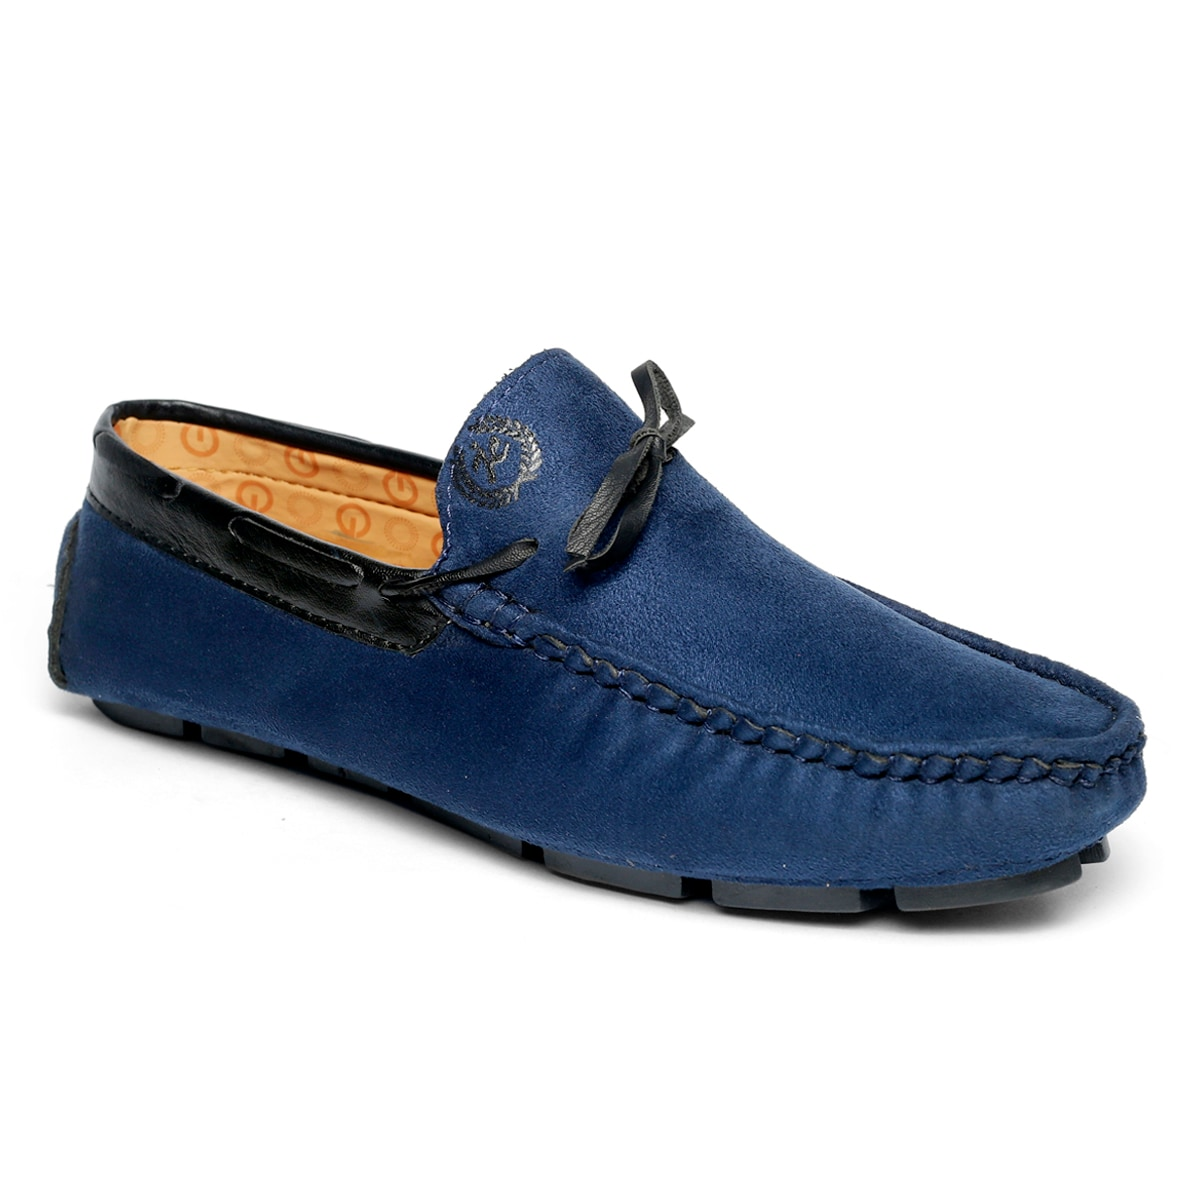 JK PORT COMFORTABLE, FASHIONABLE AND TRENDY LOAFERS JKPLF053BLU (BLUE,6-10,8 PAIR)